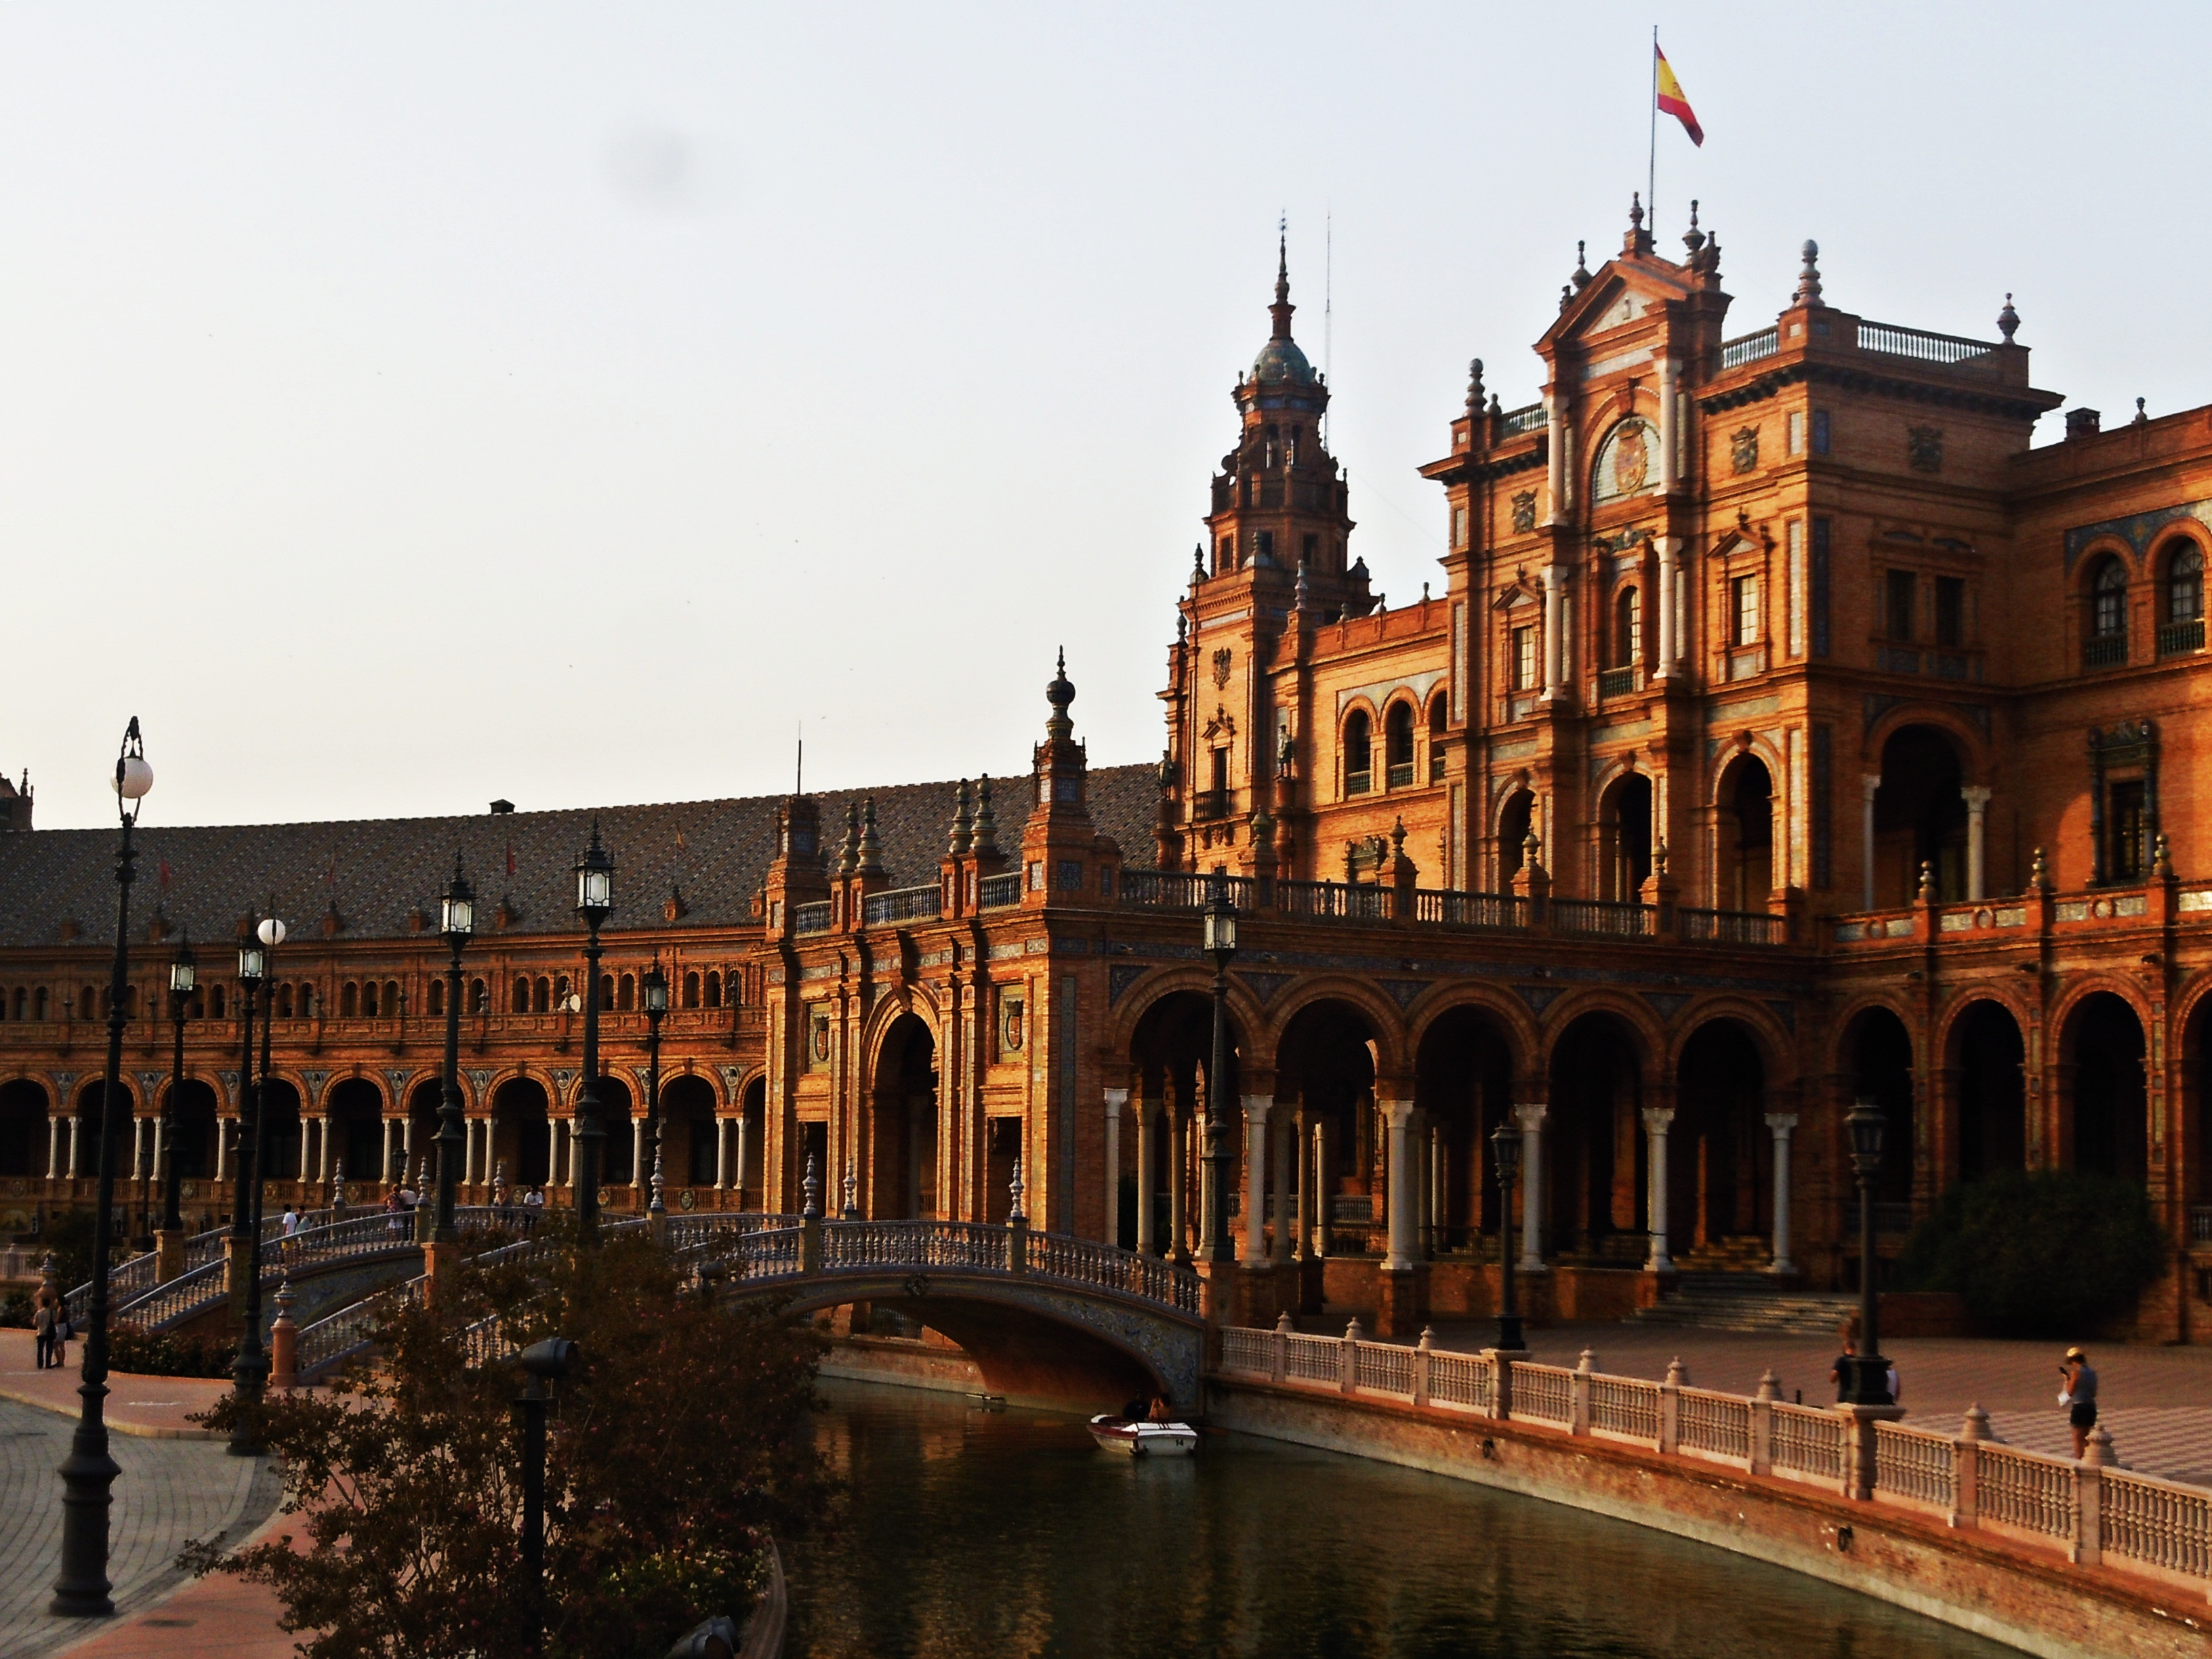 File:Plaza de España in the Maria Luisa Park, Seville Spain- VIII.JPG - Wikim...